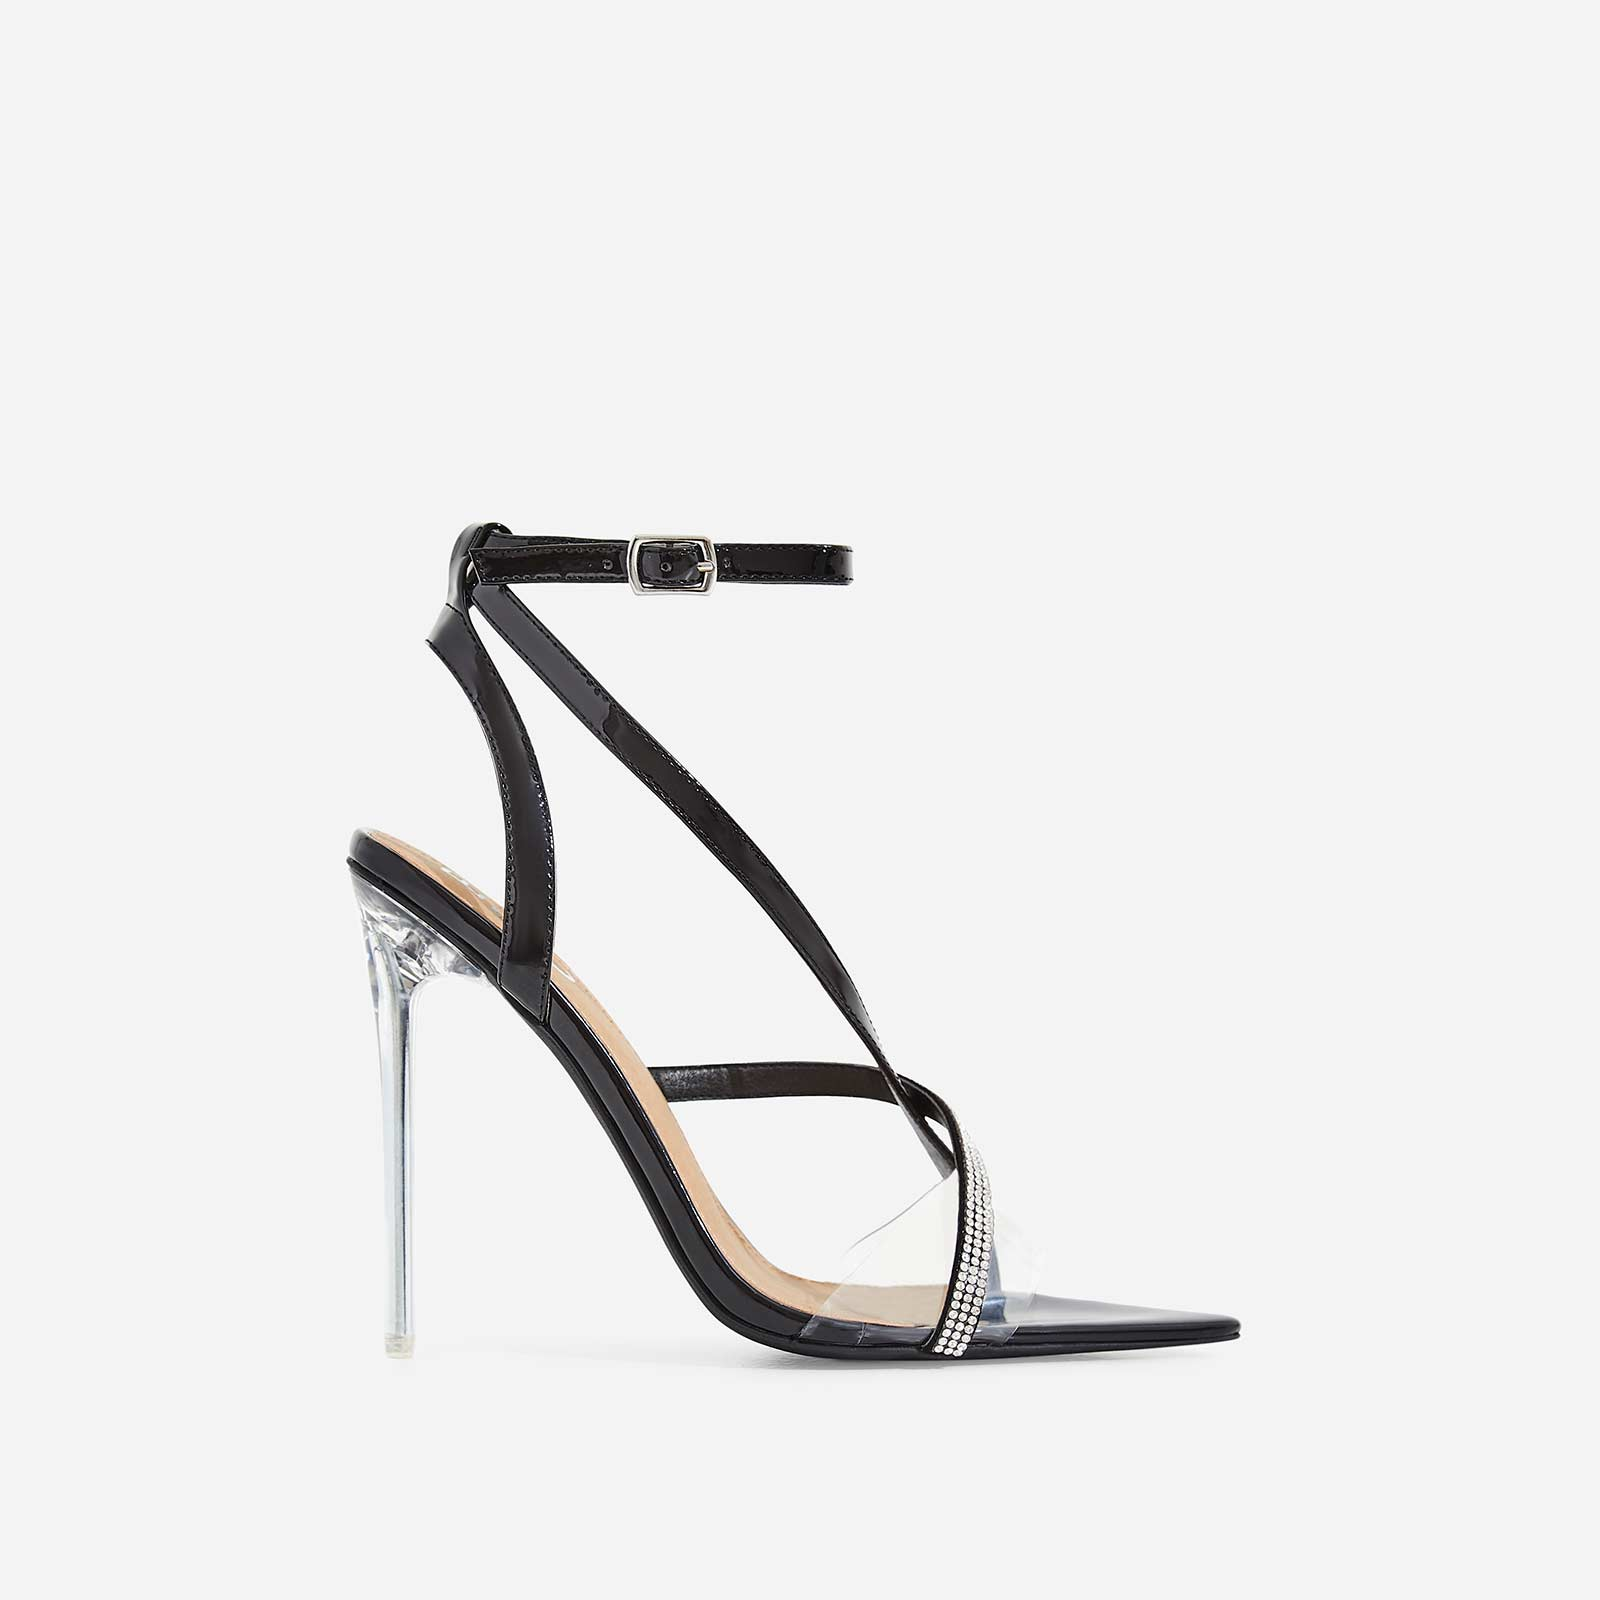 Khloe Dimante Pointed Perspex Heel In Black Patent